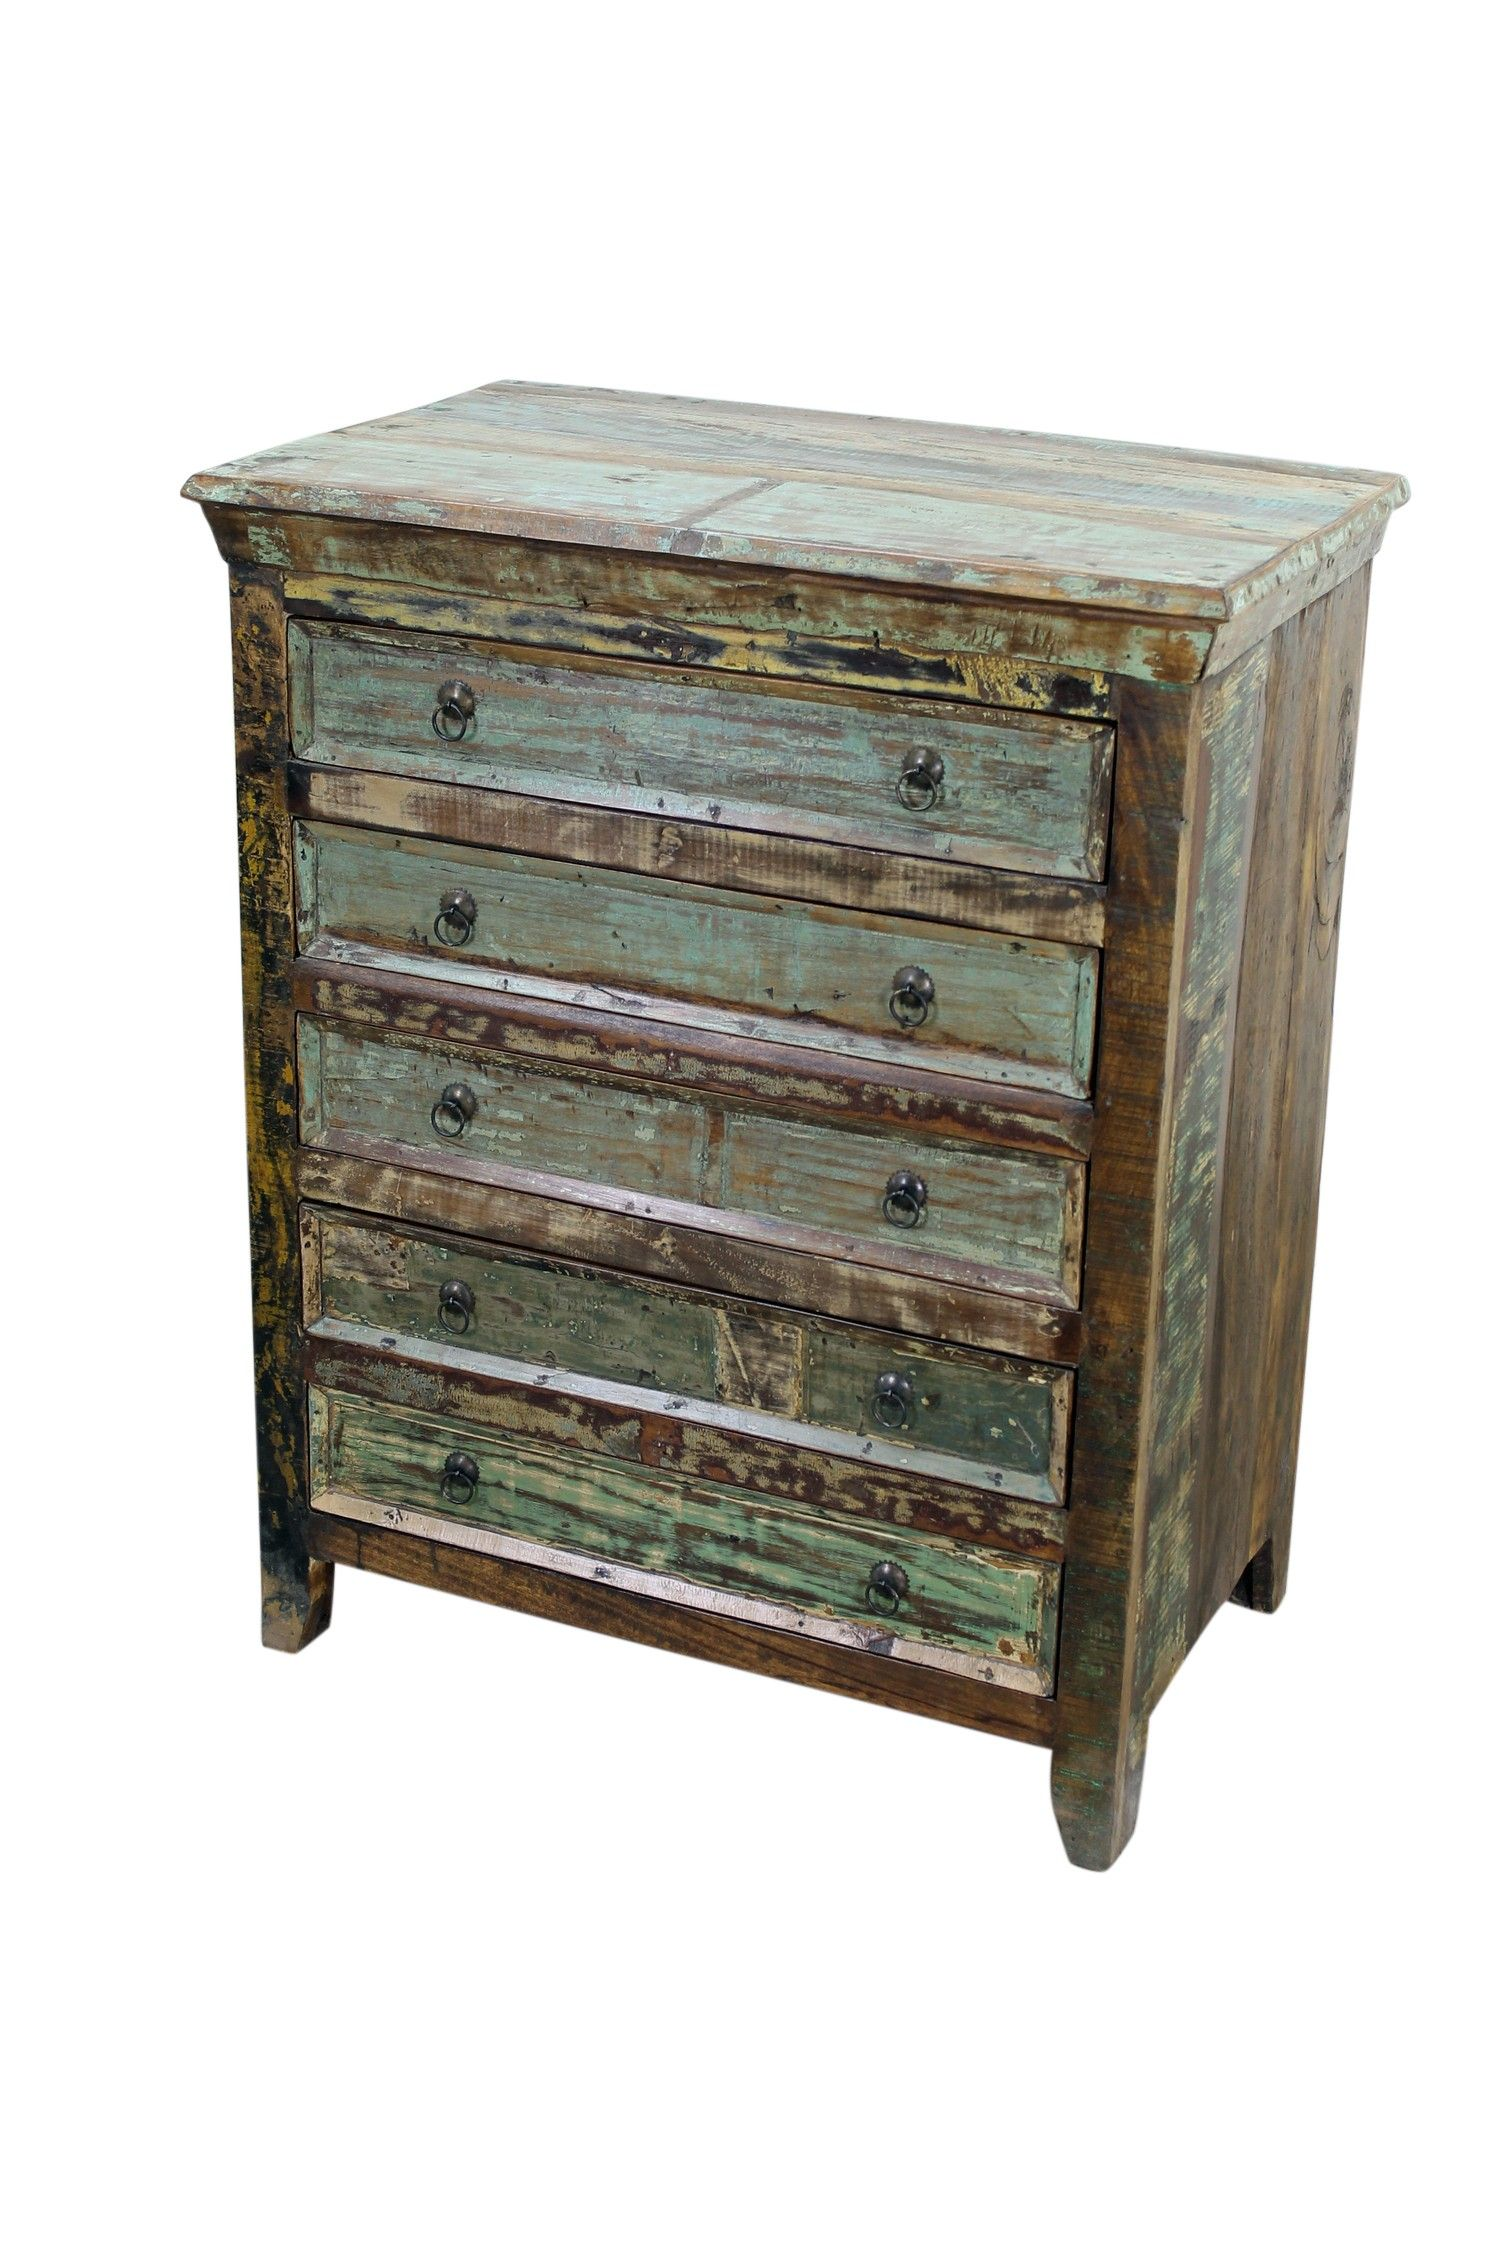 image rustic mexican furniture. Rustic Distressed Furniture - Google Search Image Mexican